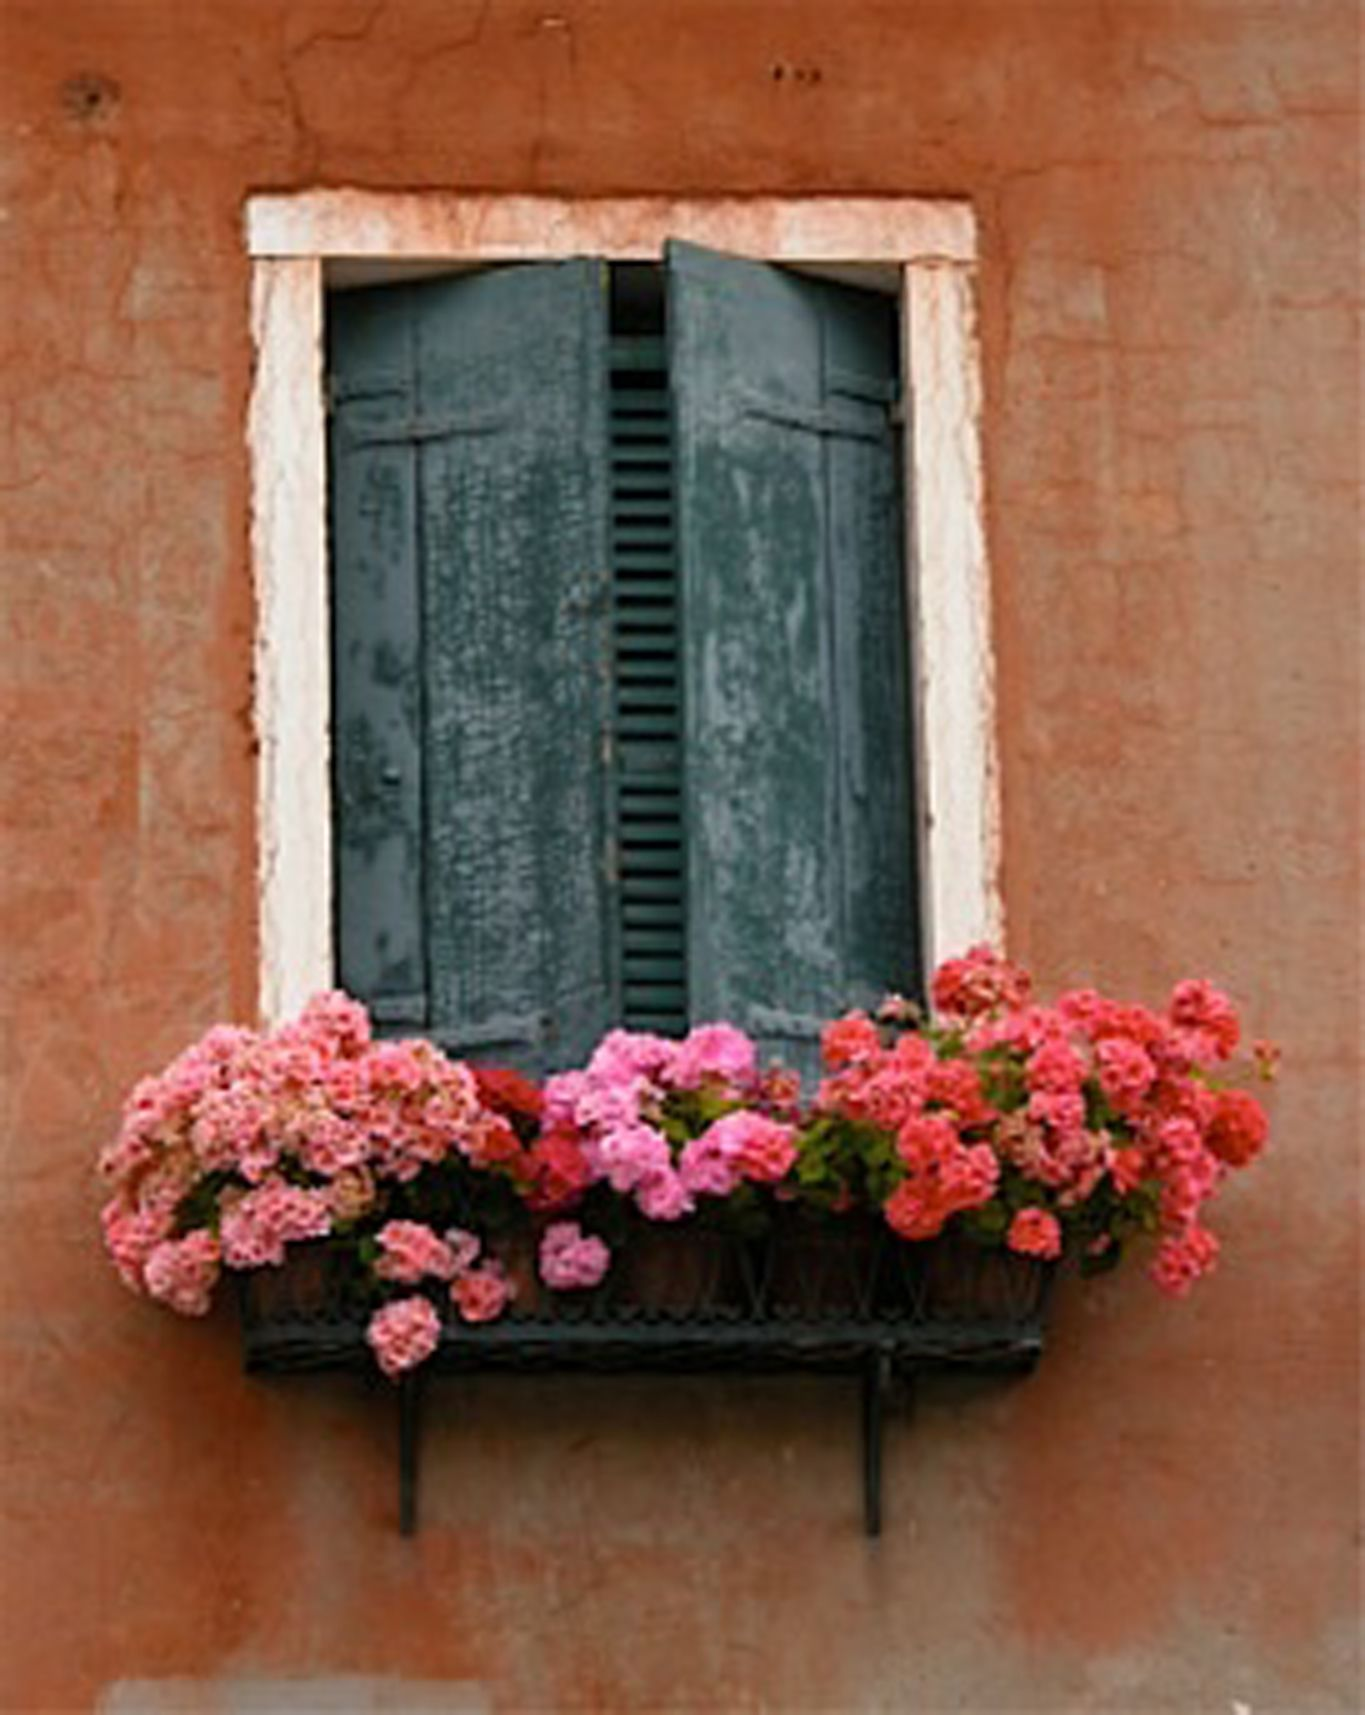 House box window design  as a kid and even as a grownup i always imagined my home would